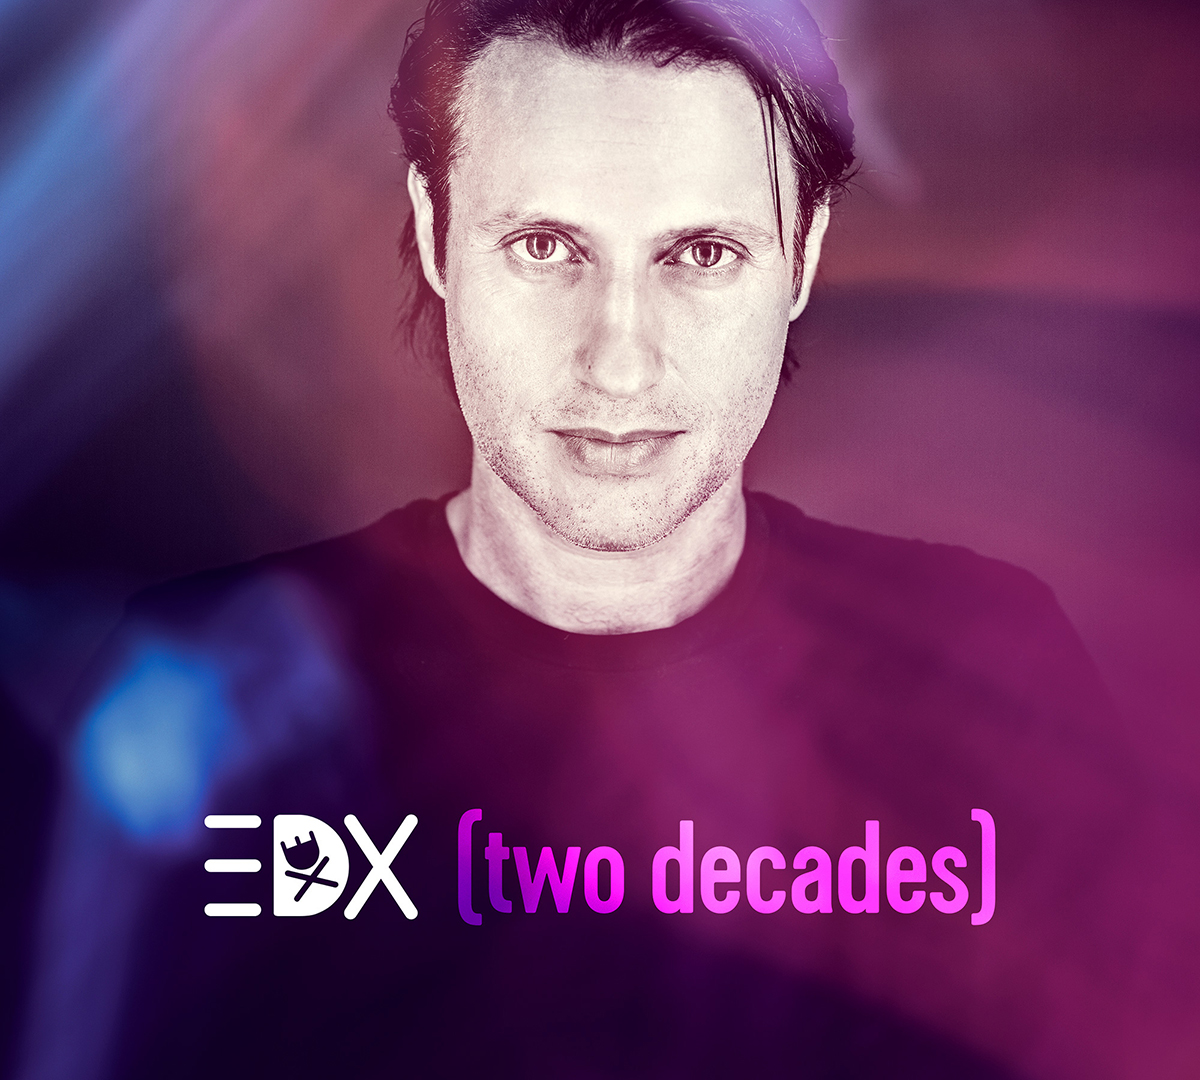 EDX / new album two decades / neues Album